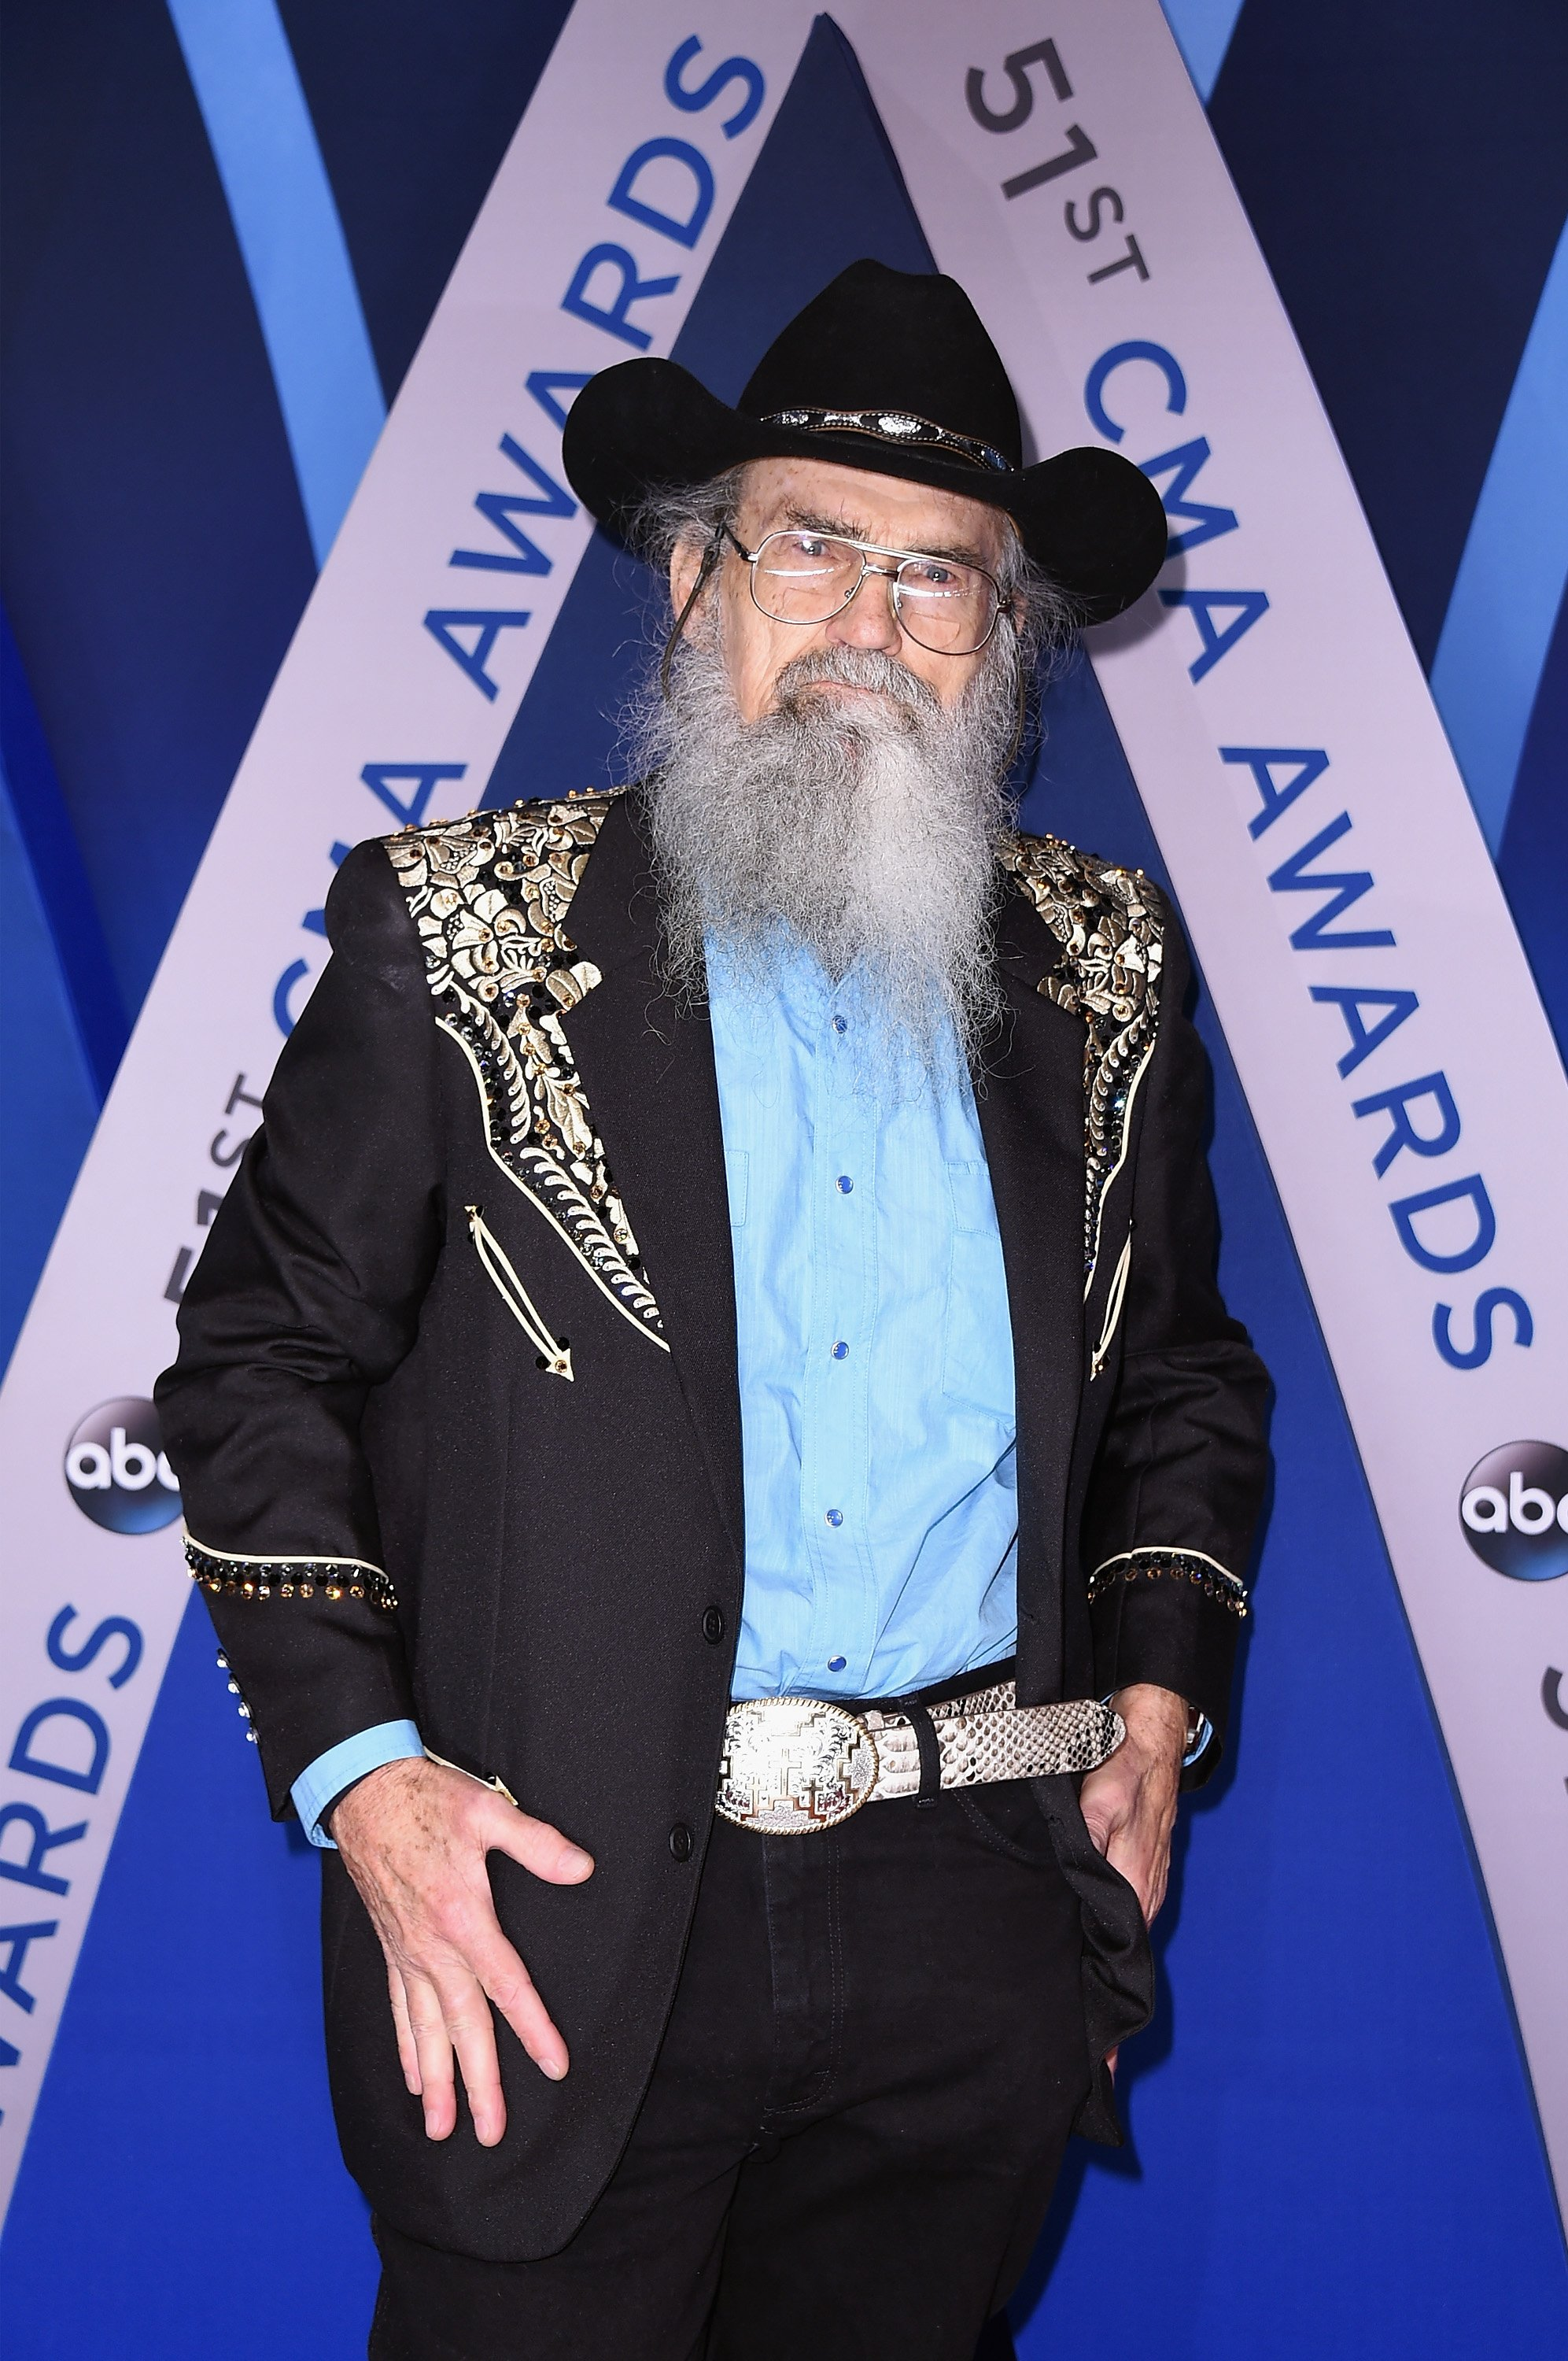 Si Robertson attends the 51st annual CMA Awards at the Bridgestone Arena on November 8, 2017 in Nashville, Tennessee. | Photo: GettyImages